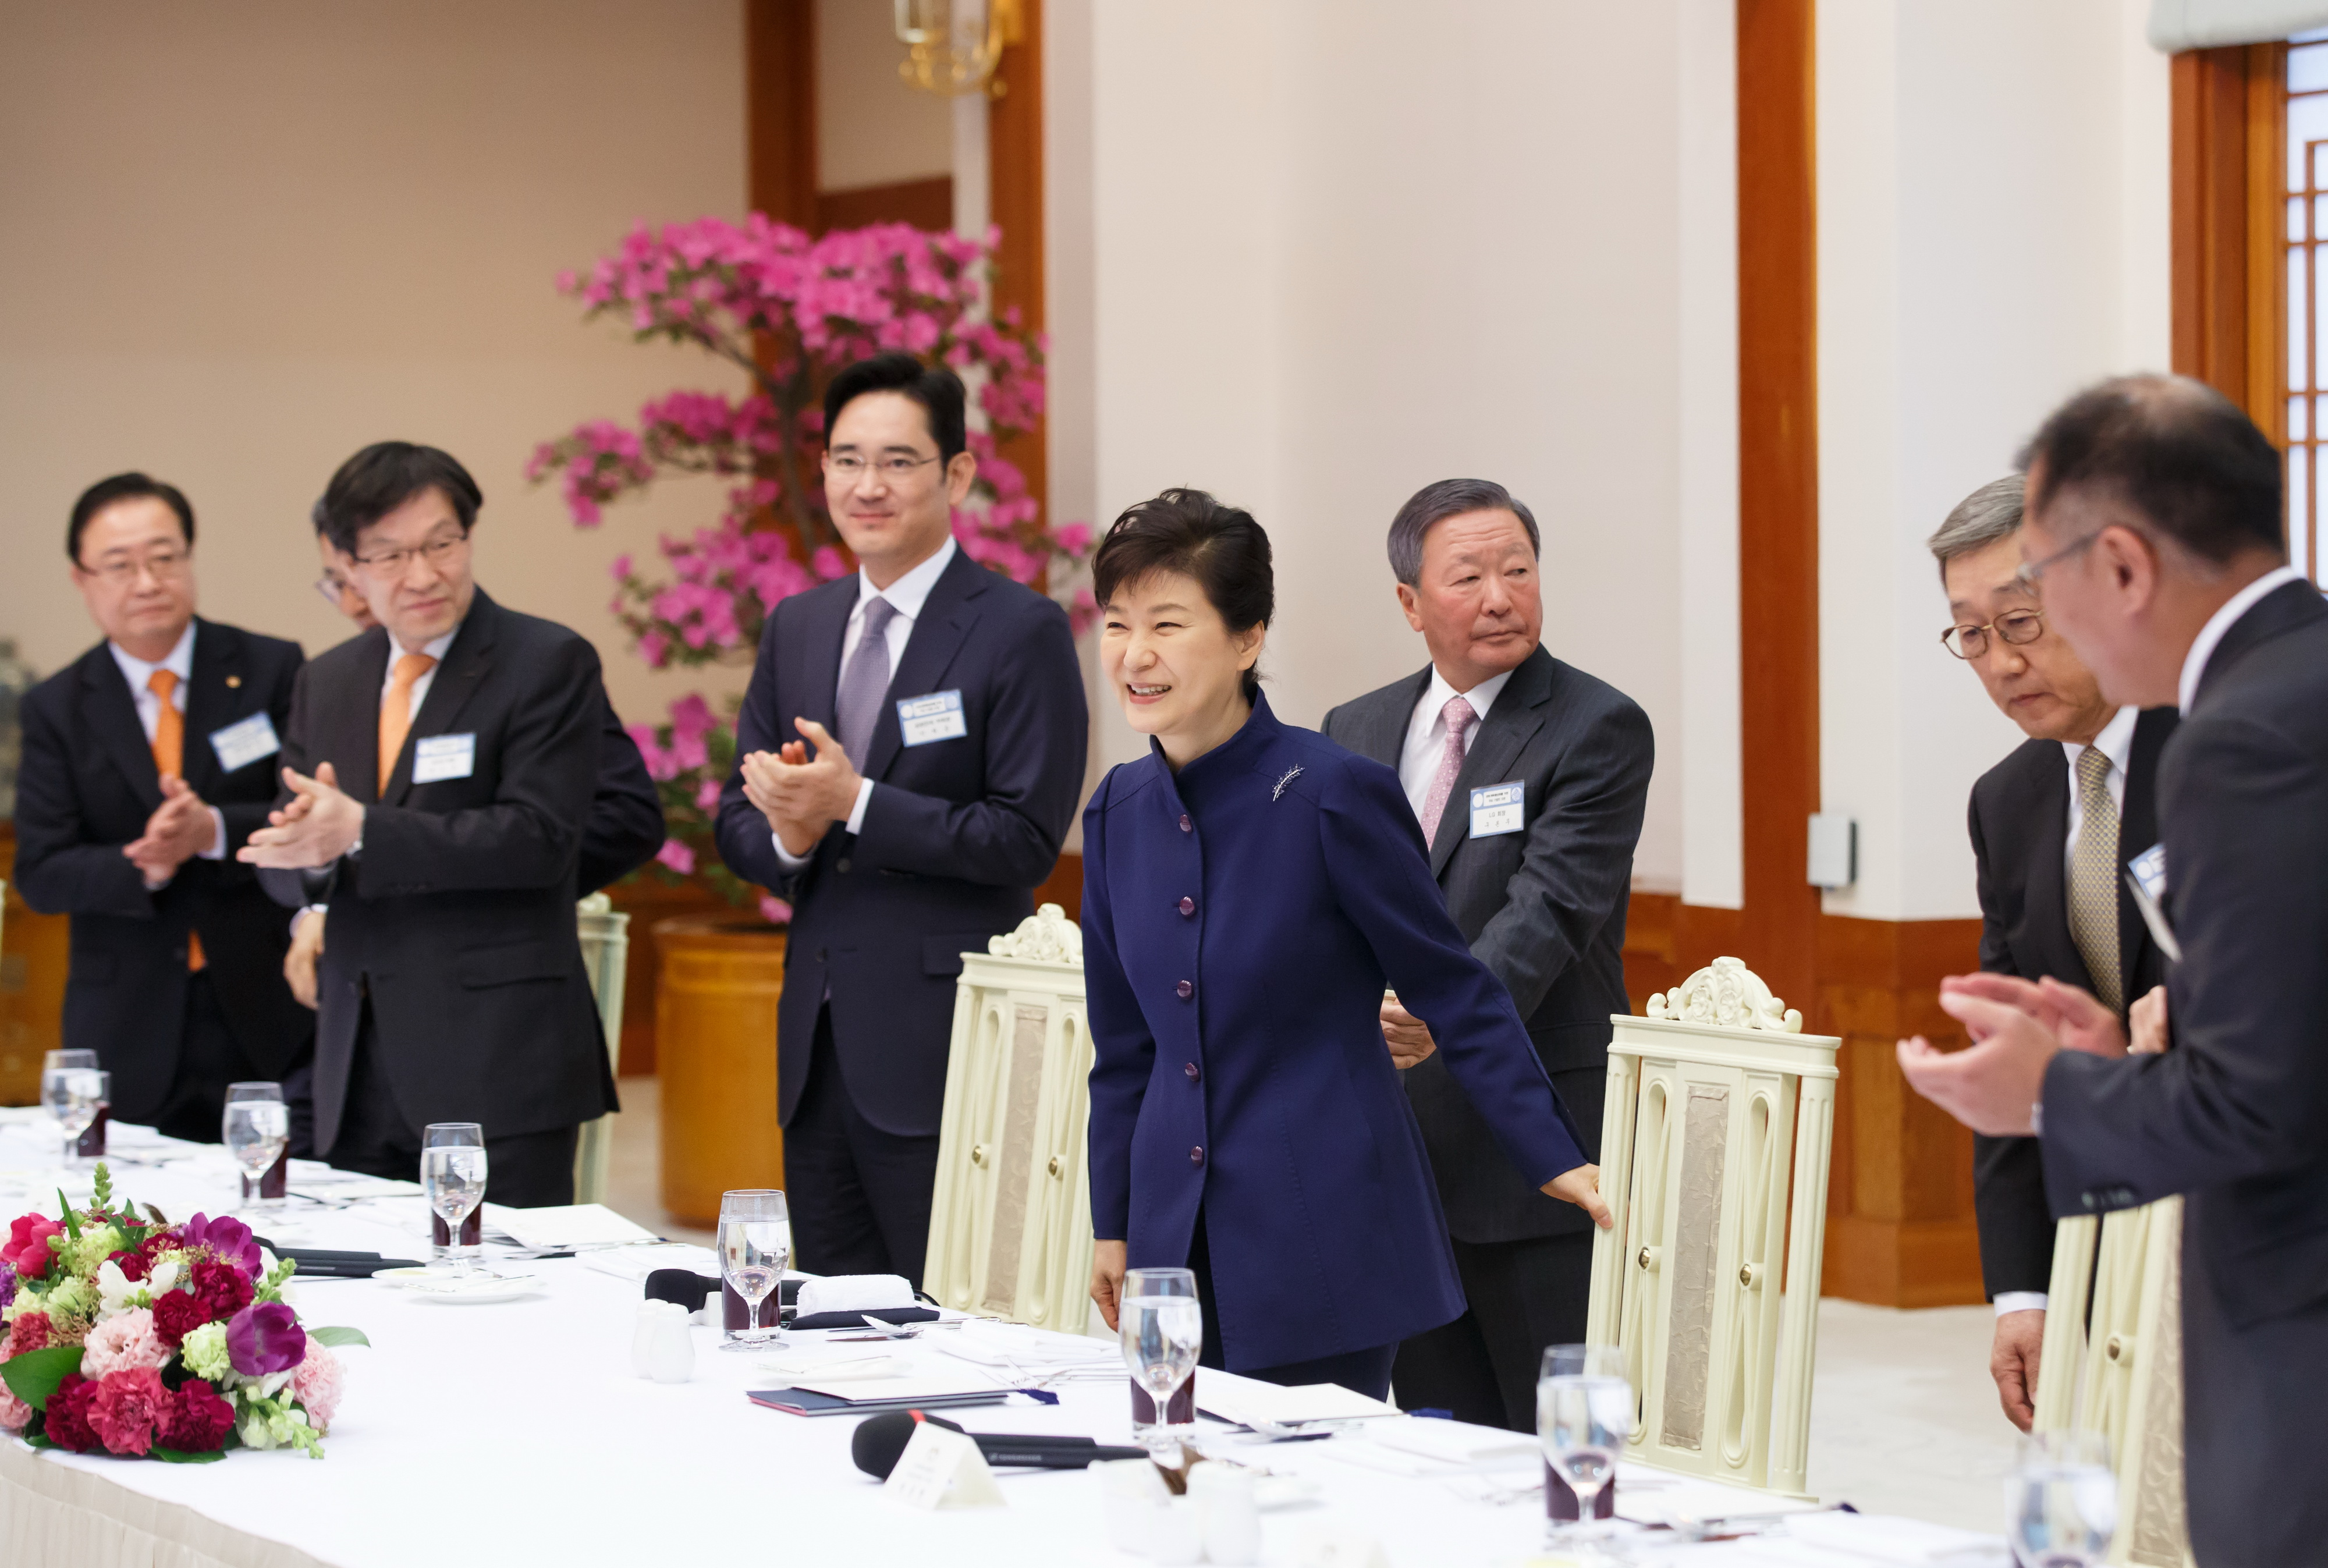 Korean President Park Geun-hye sits down to lunch with executives from many of Korea's largest conglomerates on July 24.